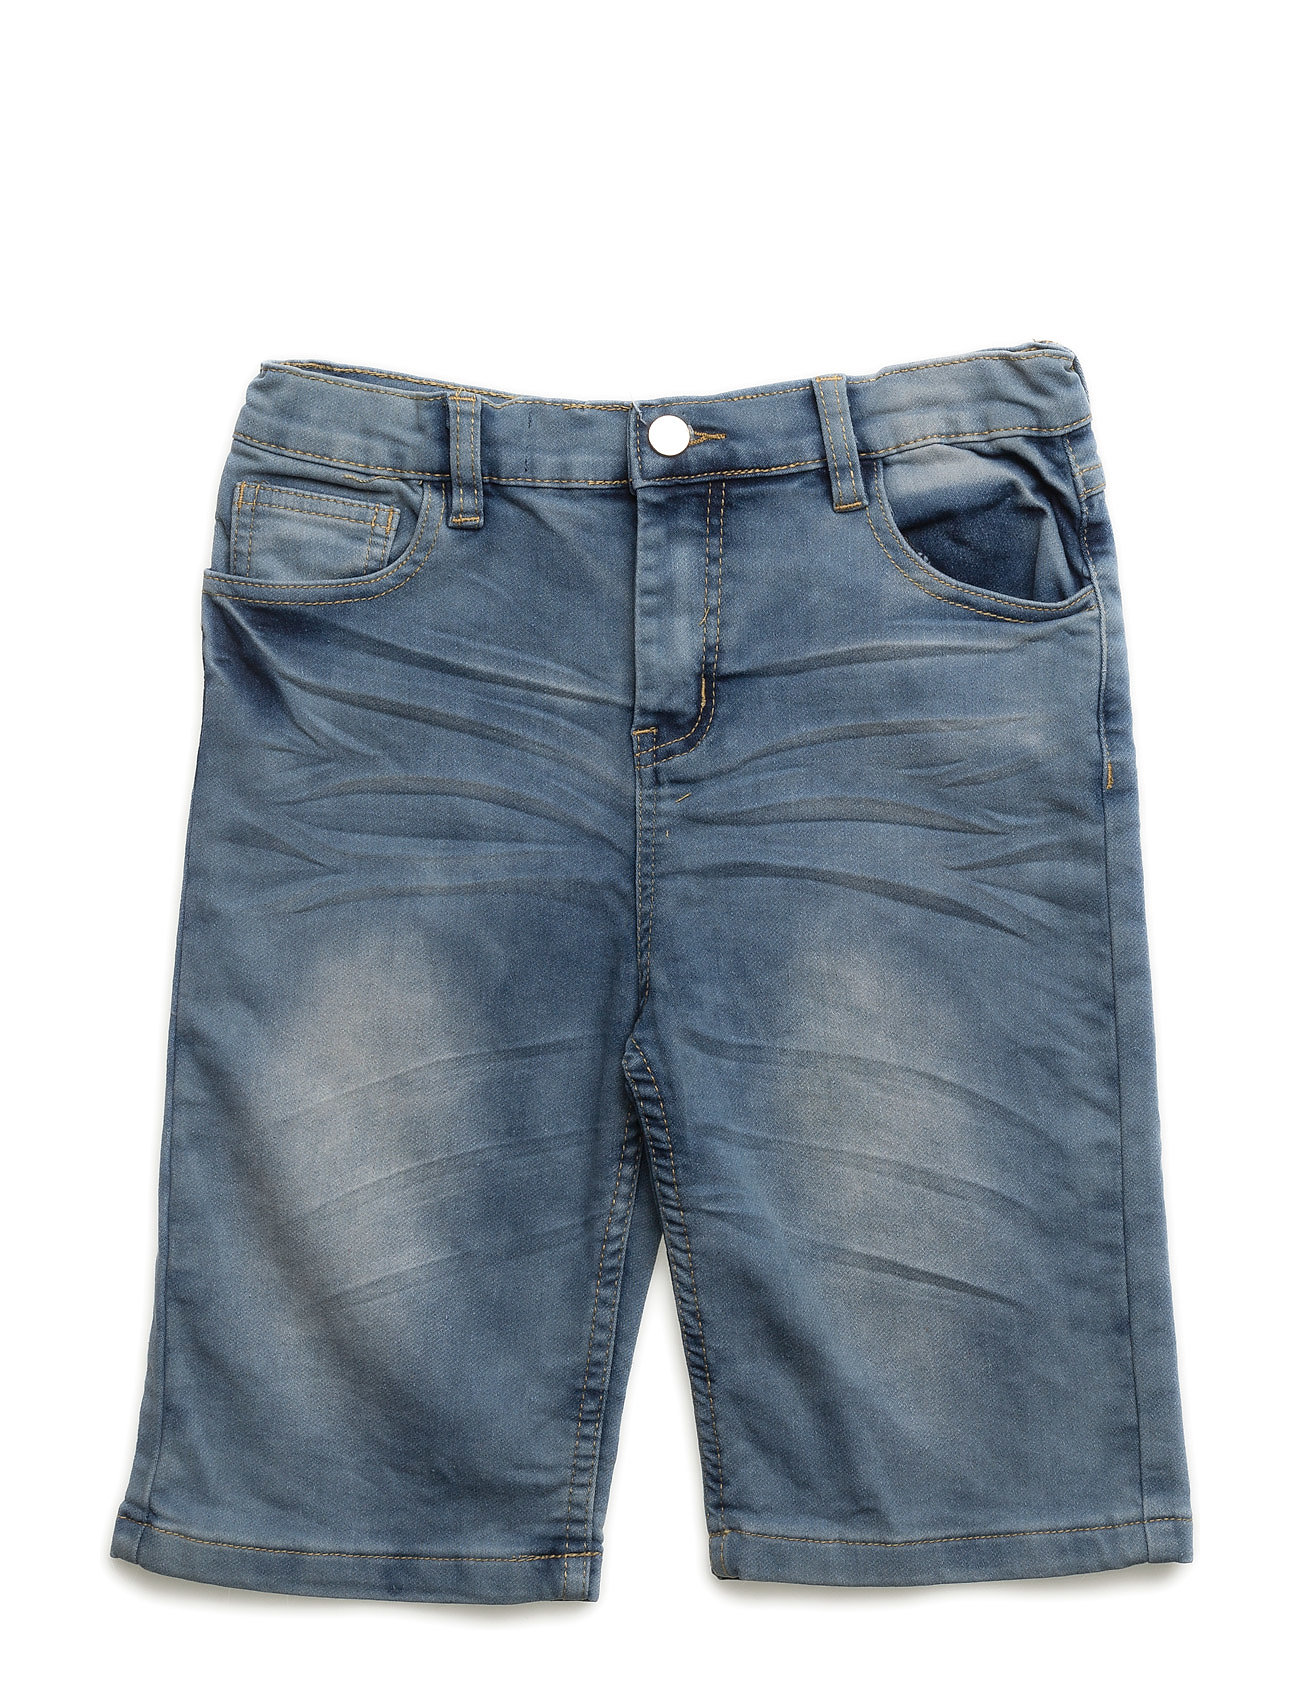 Shorts Soft Denim 31 NOVA STAR  til Børn i